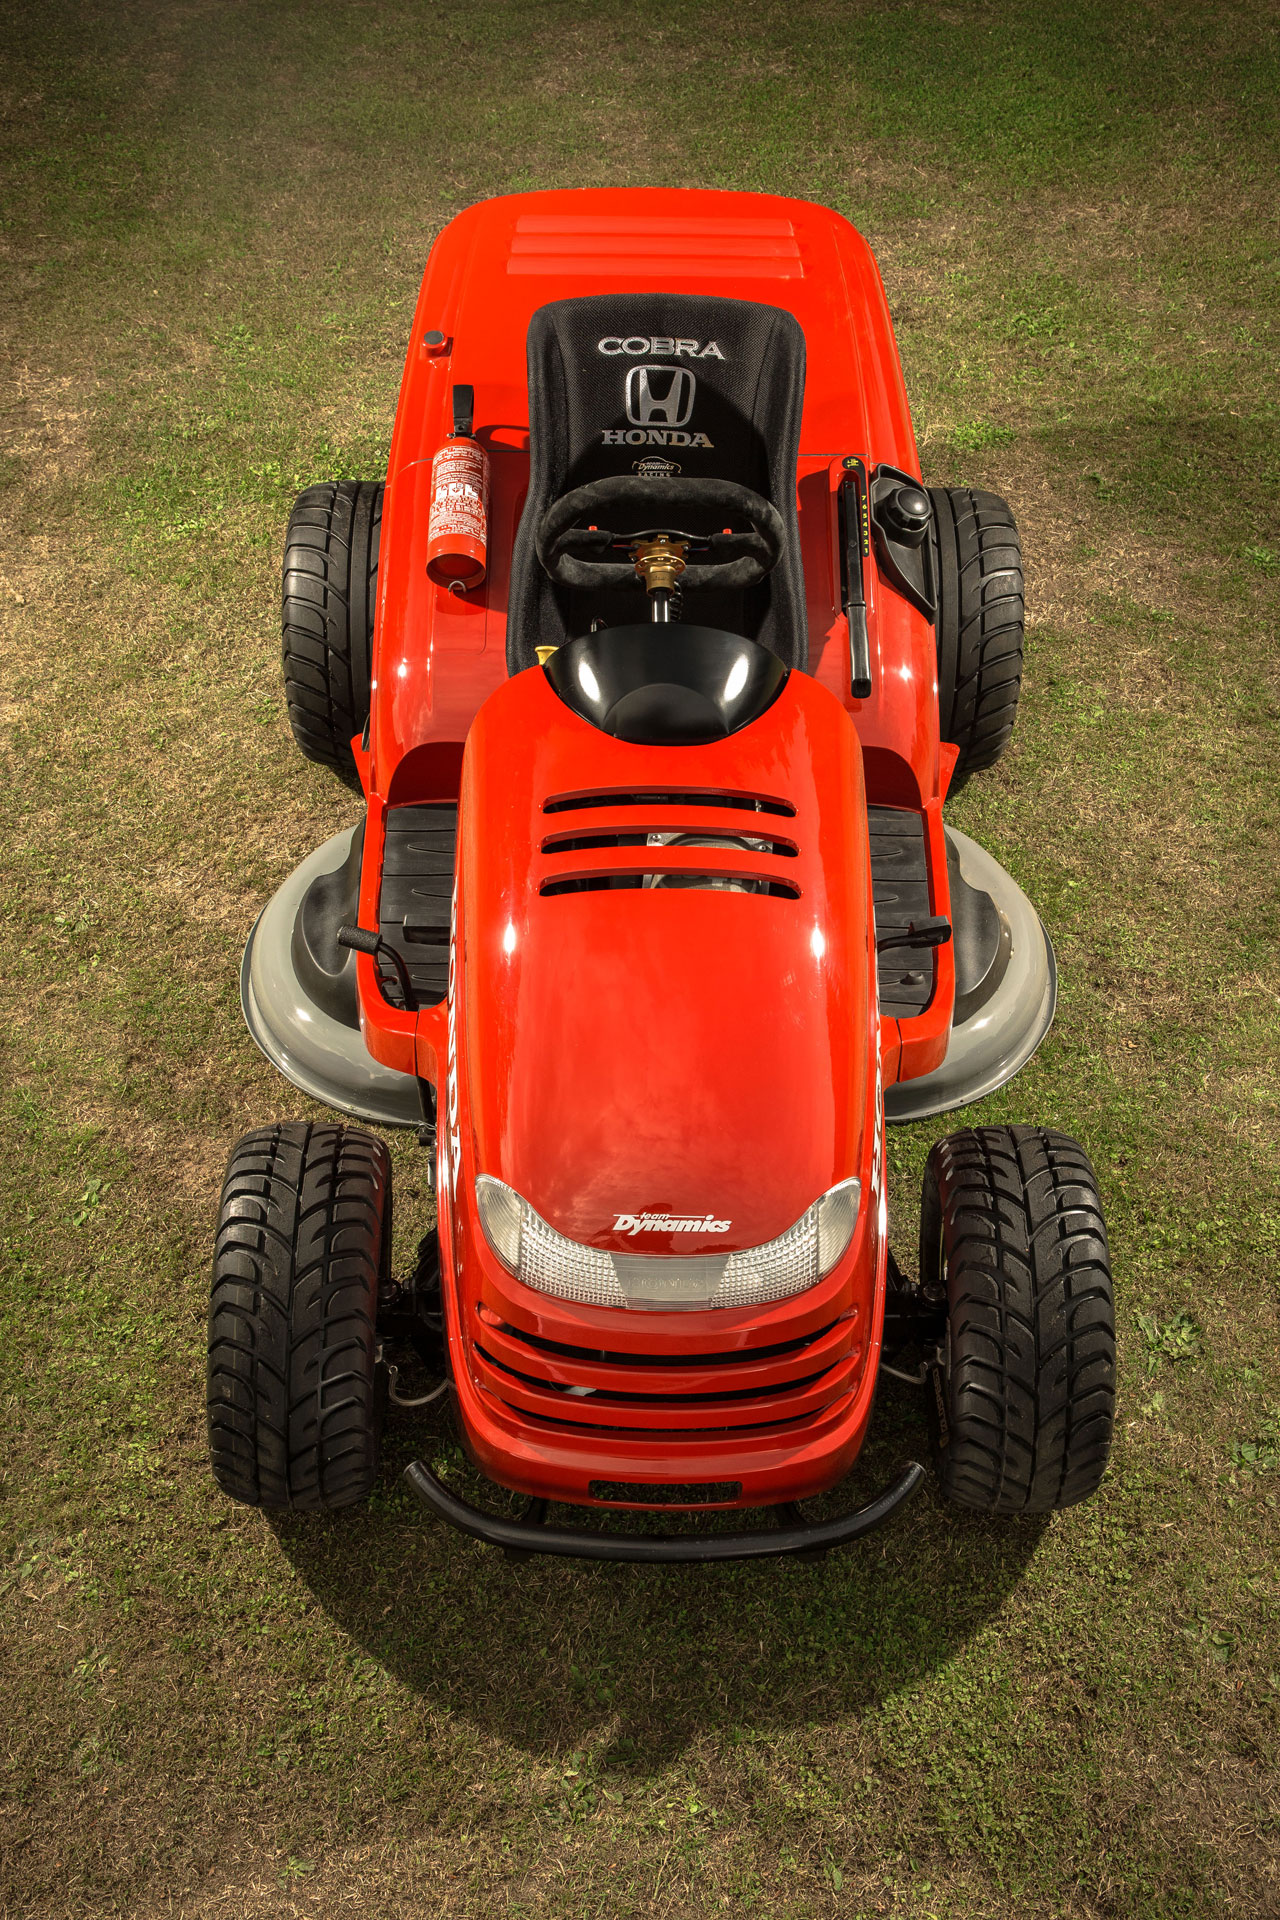 Honda Mean Mower Hits 60 Mph In 4 Seconds Cuts To 130 Mph